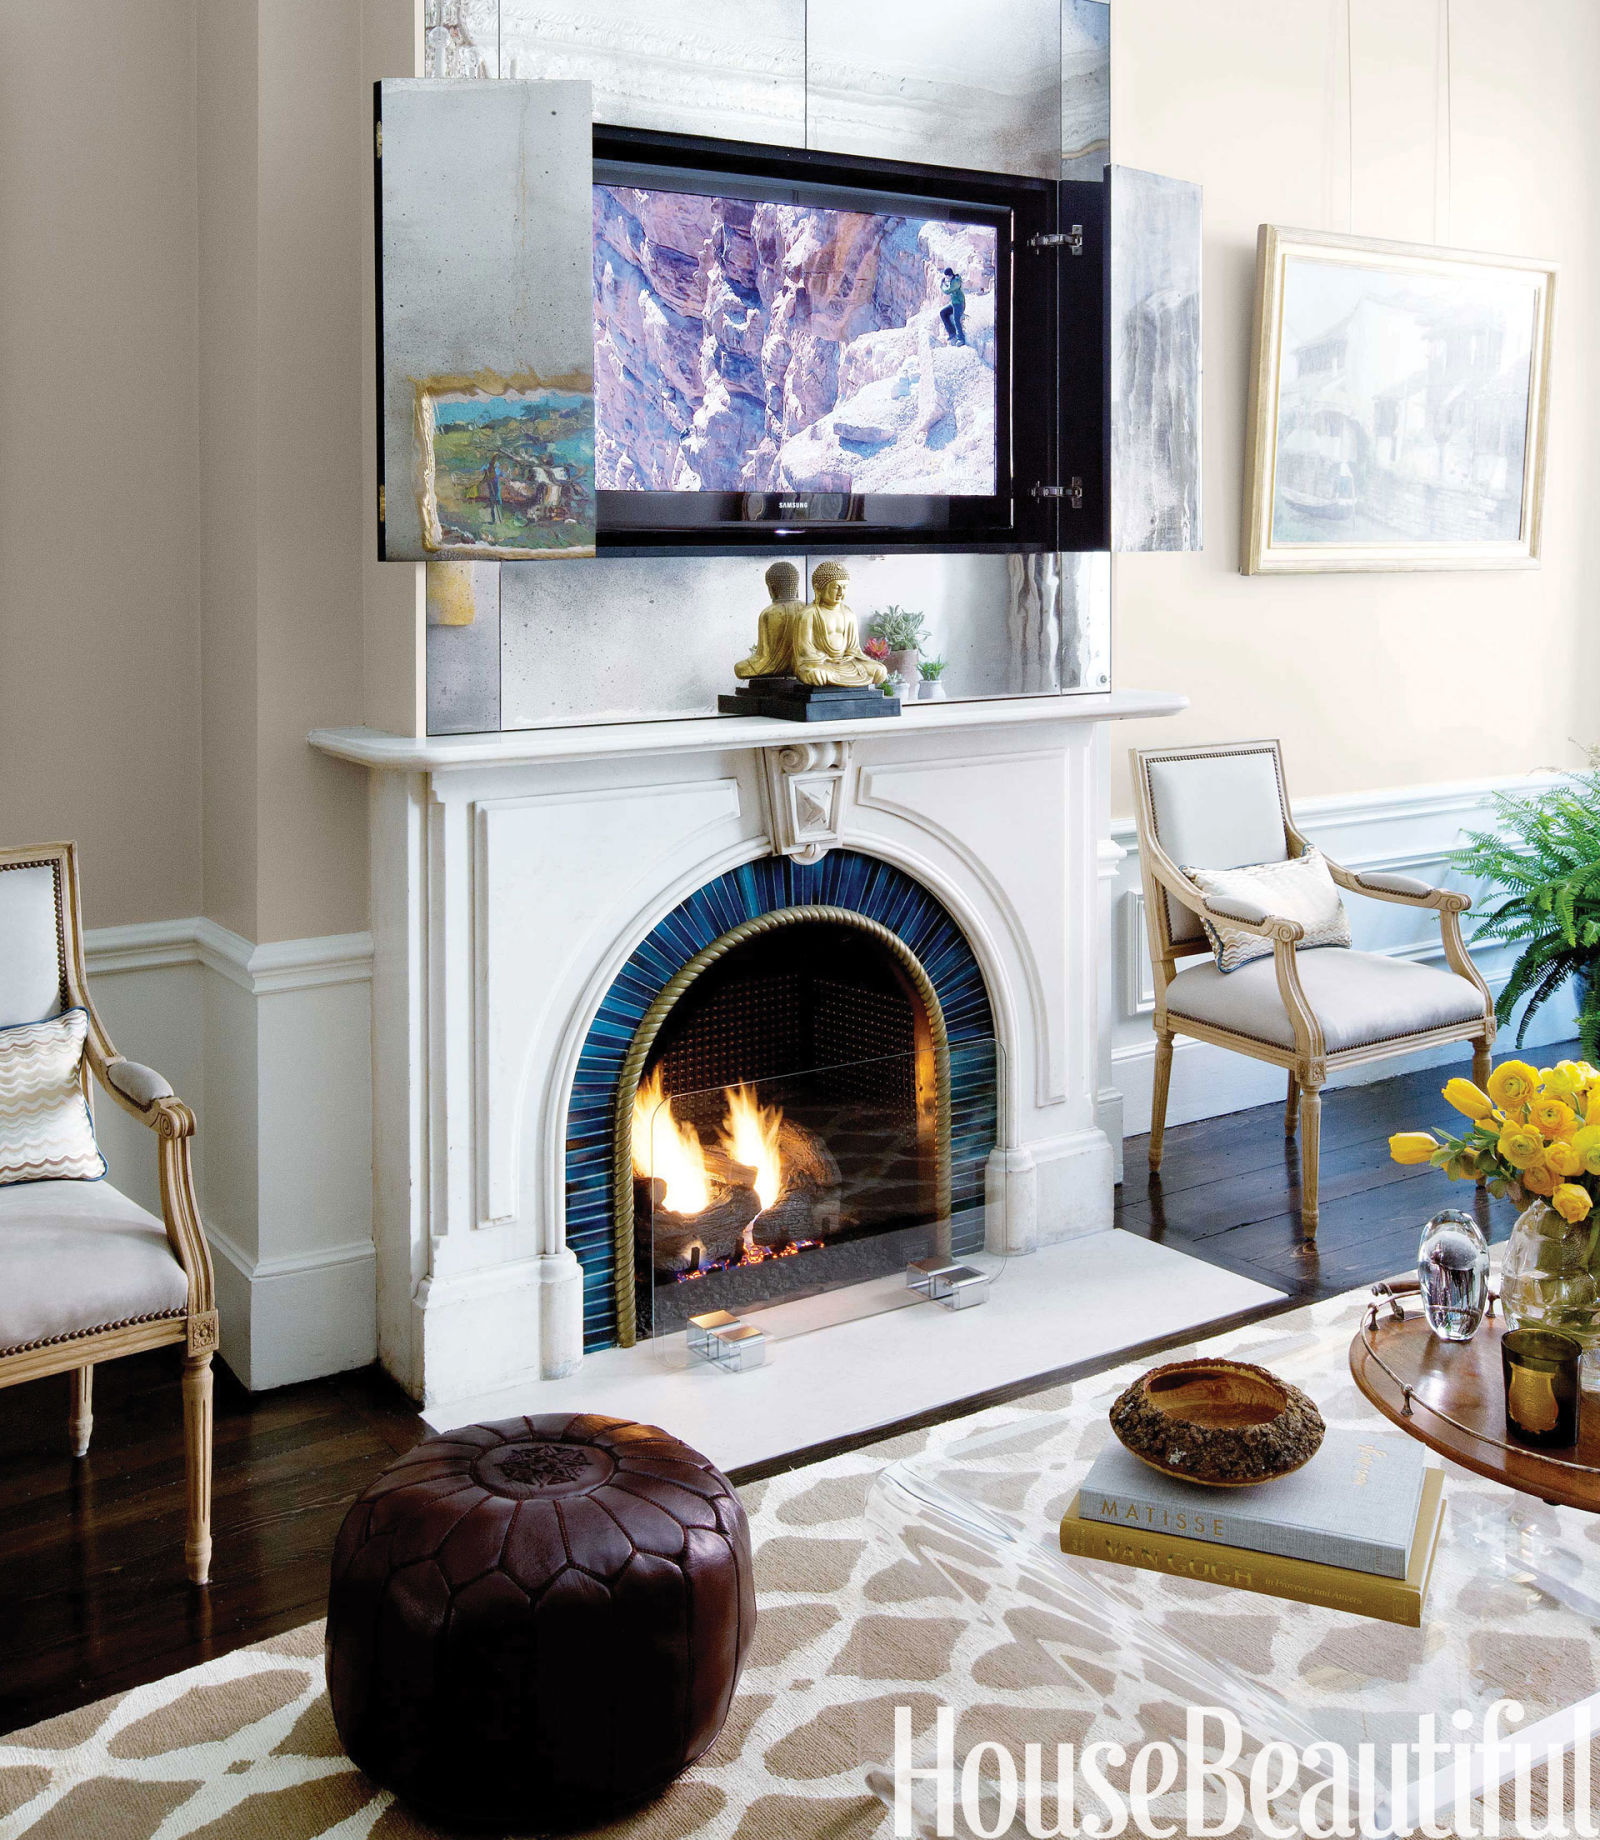 Living Room With Fireplace And Sliding Doors: Brownstone Decorating Ideas